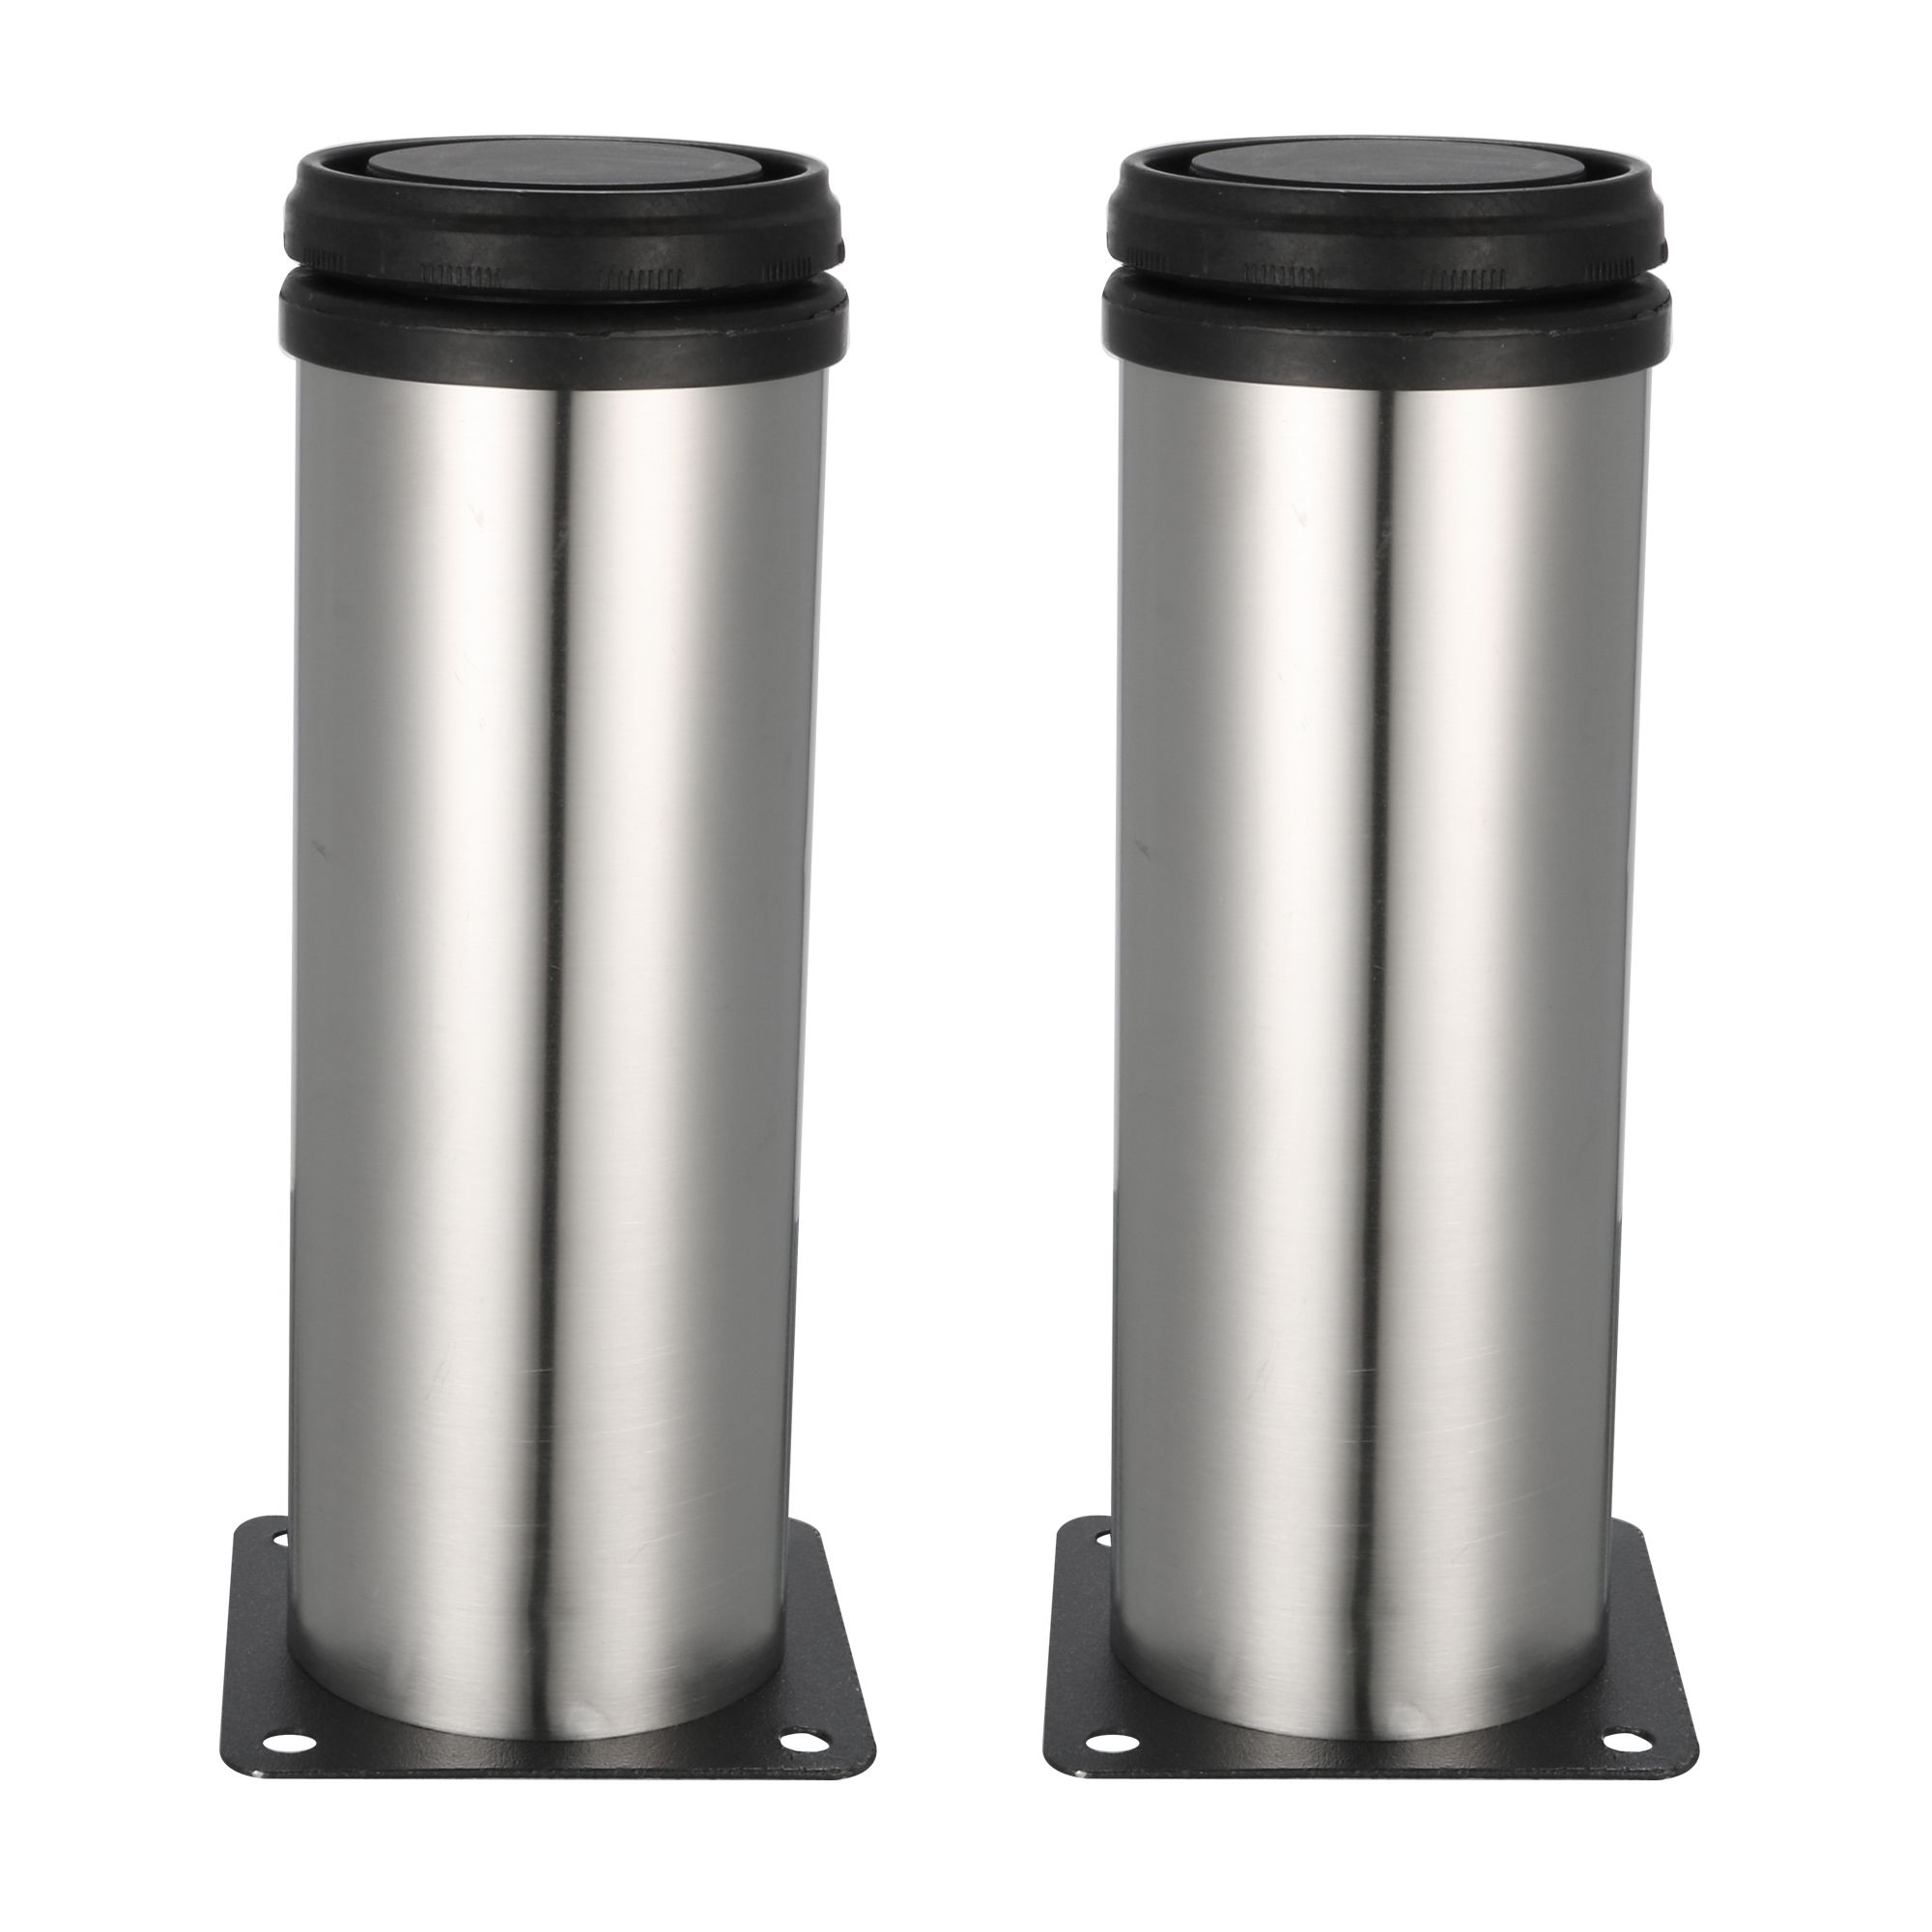 furniture legs stainless steel 150mm 165mm adjustable cabinet table feet 2pcs